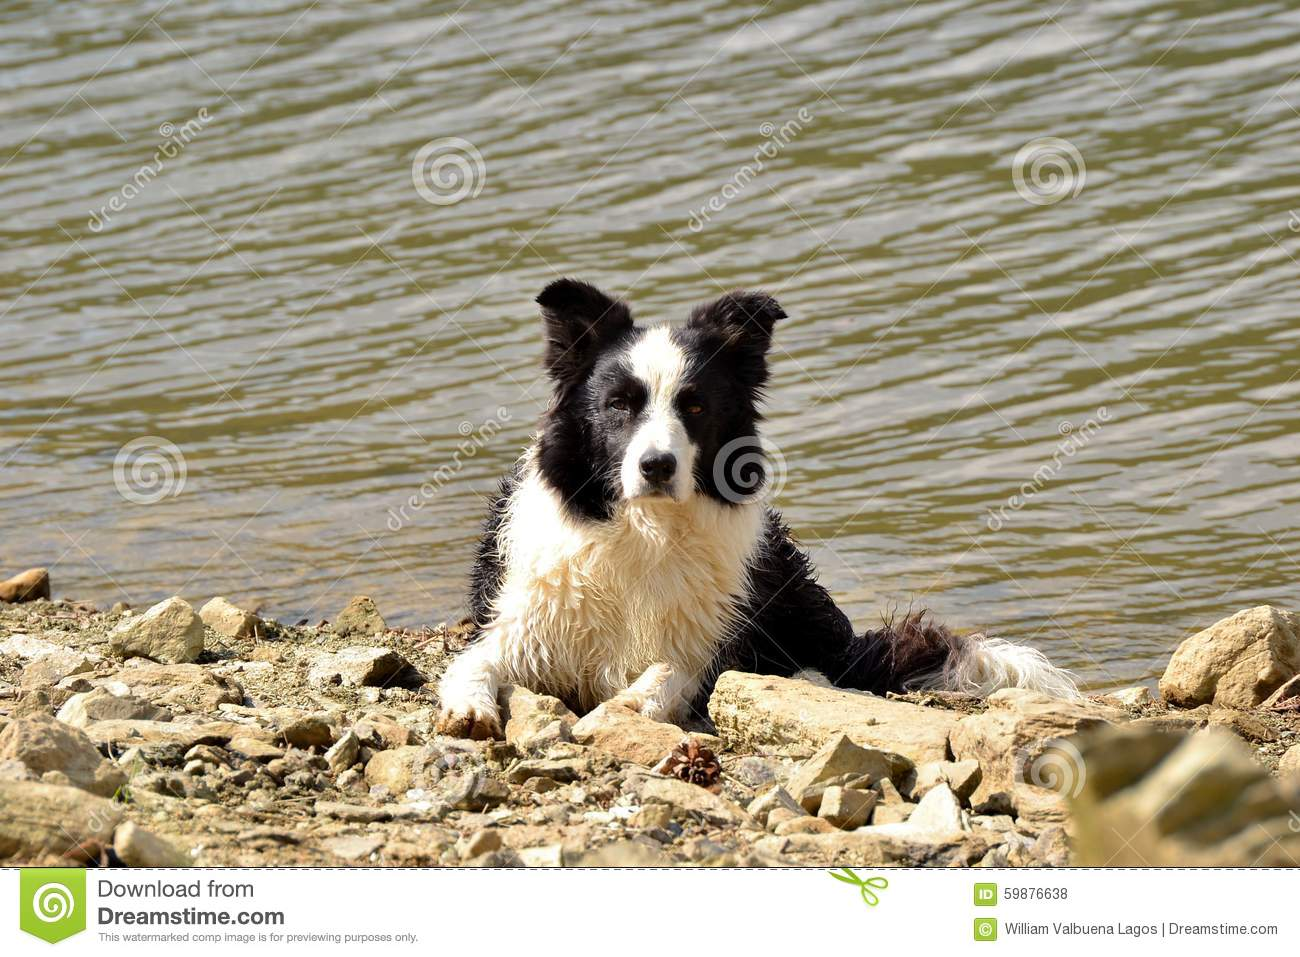 Ariel border collie